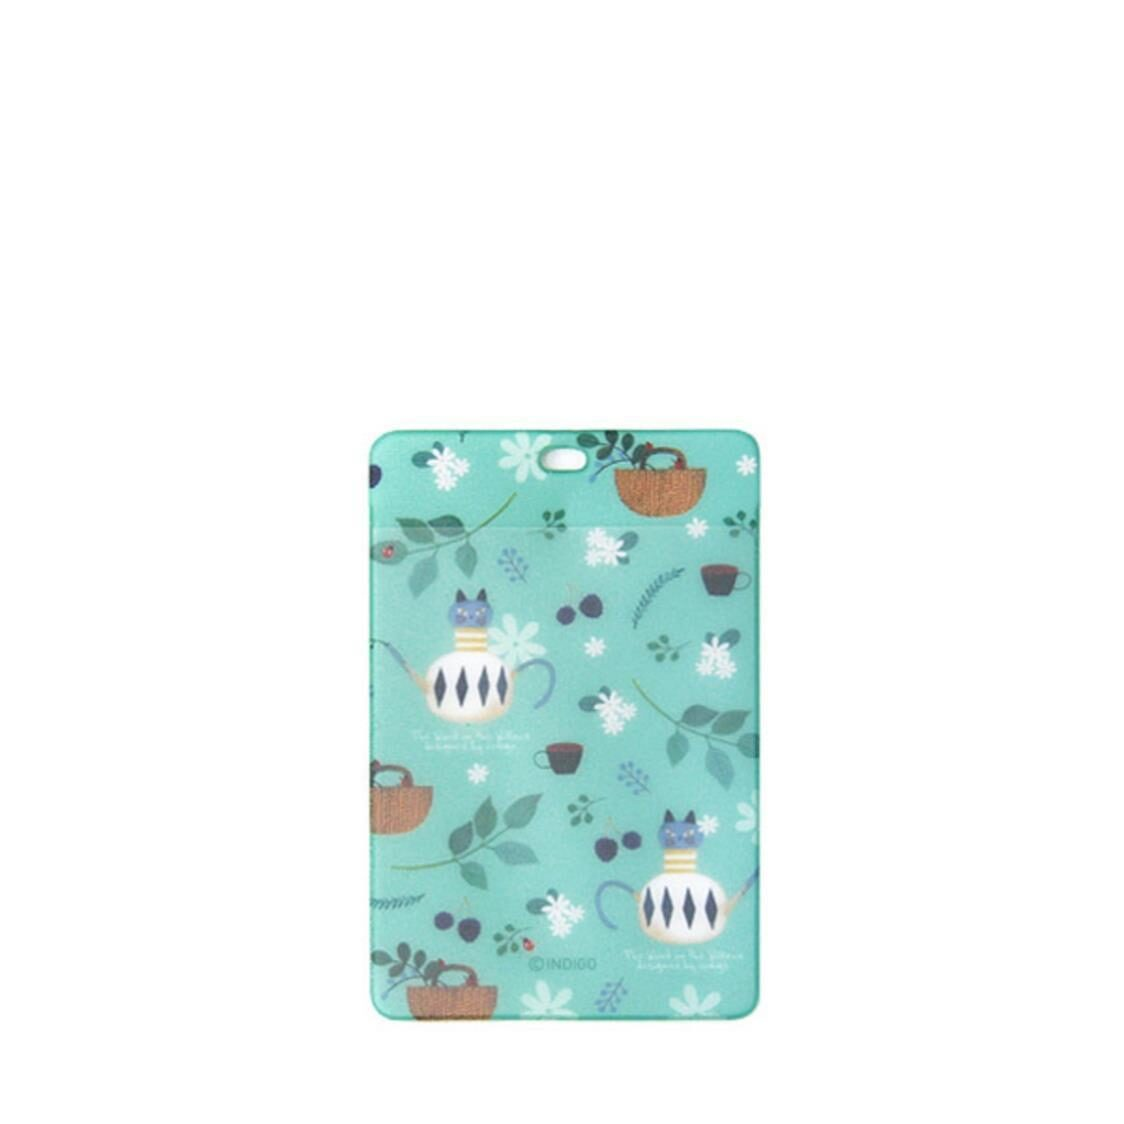 Willow Soft Cardcase Mint Tea